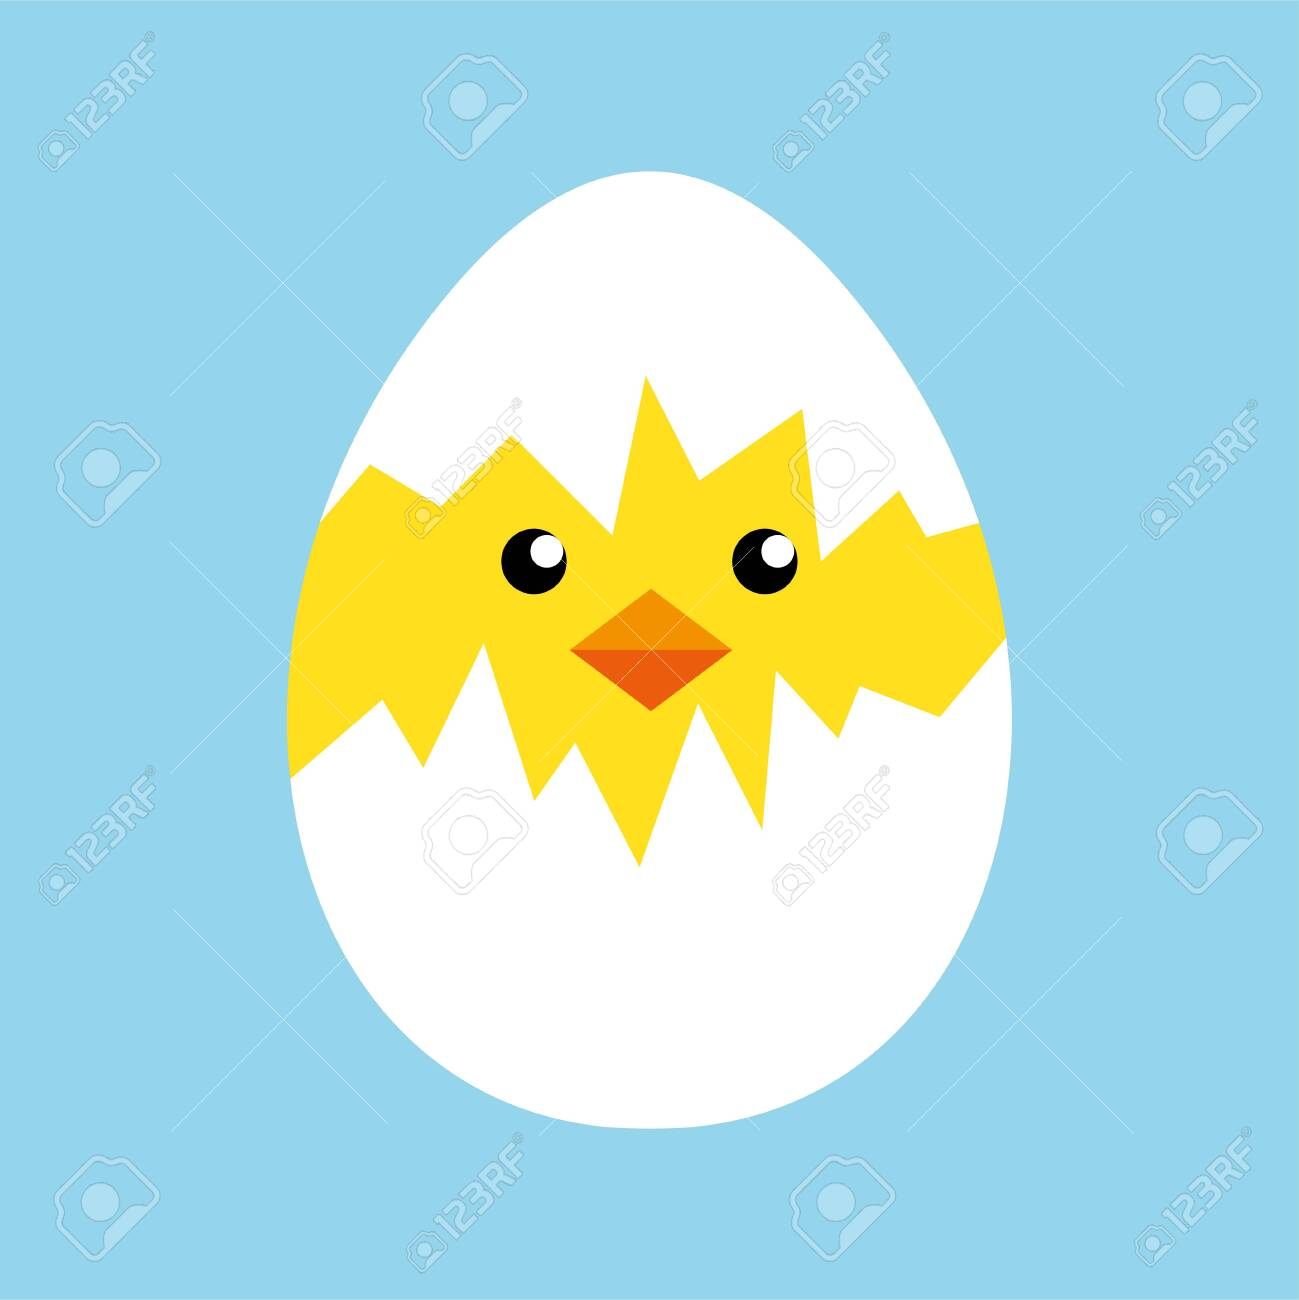 Happy easter egg chick sign, background vector - 144230665